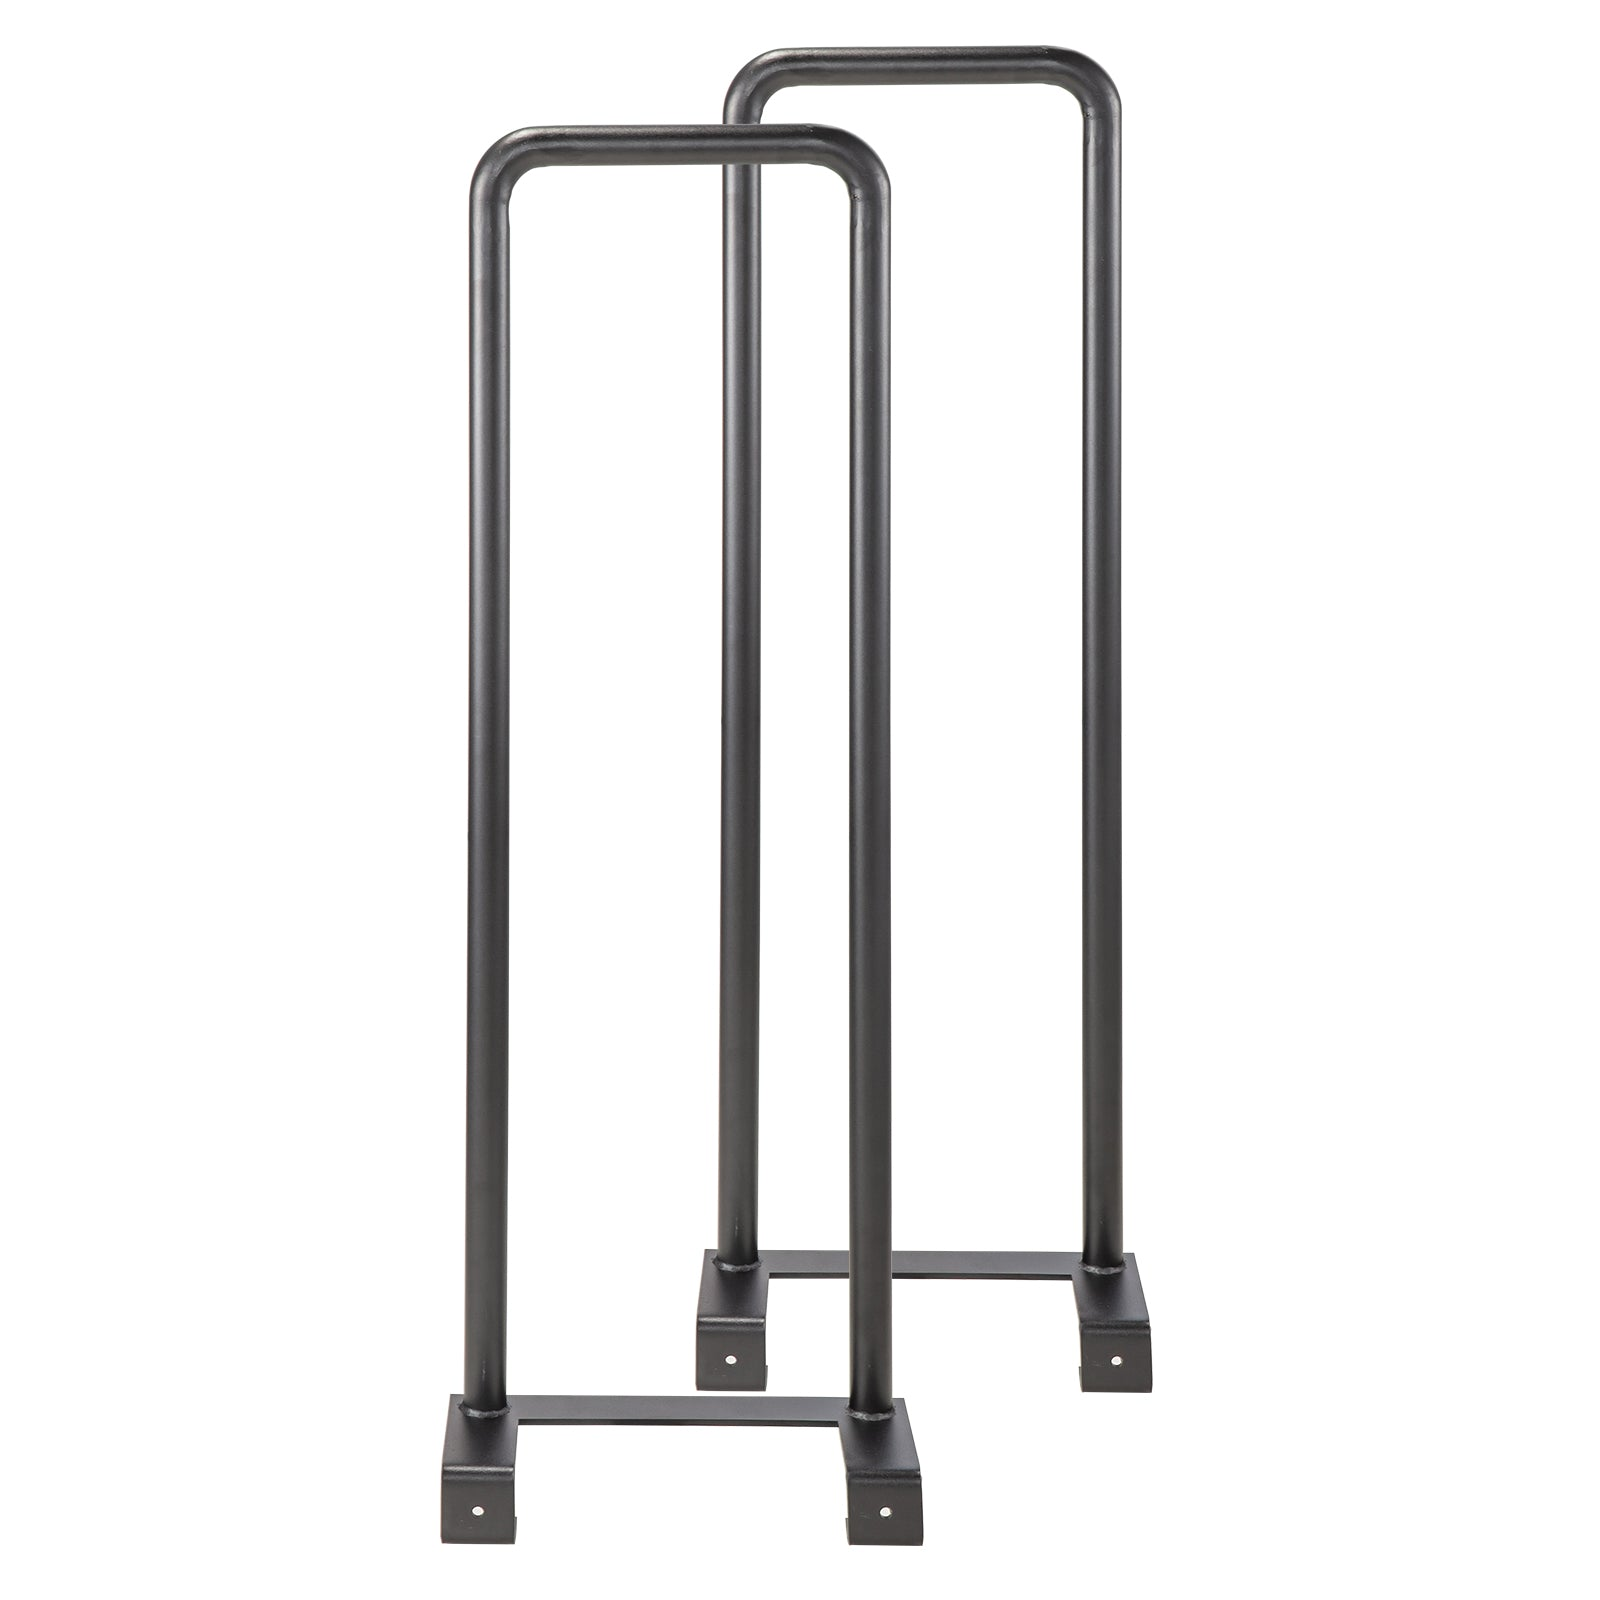 Dolly Converter 38*13 Inch Steel Converter Arms Press Dolly Converter Stability